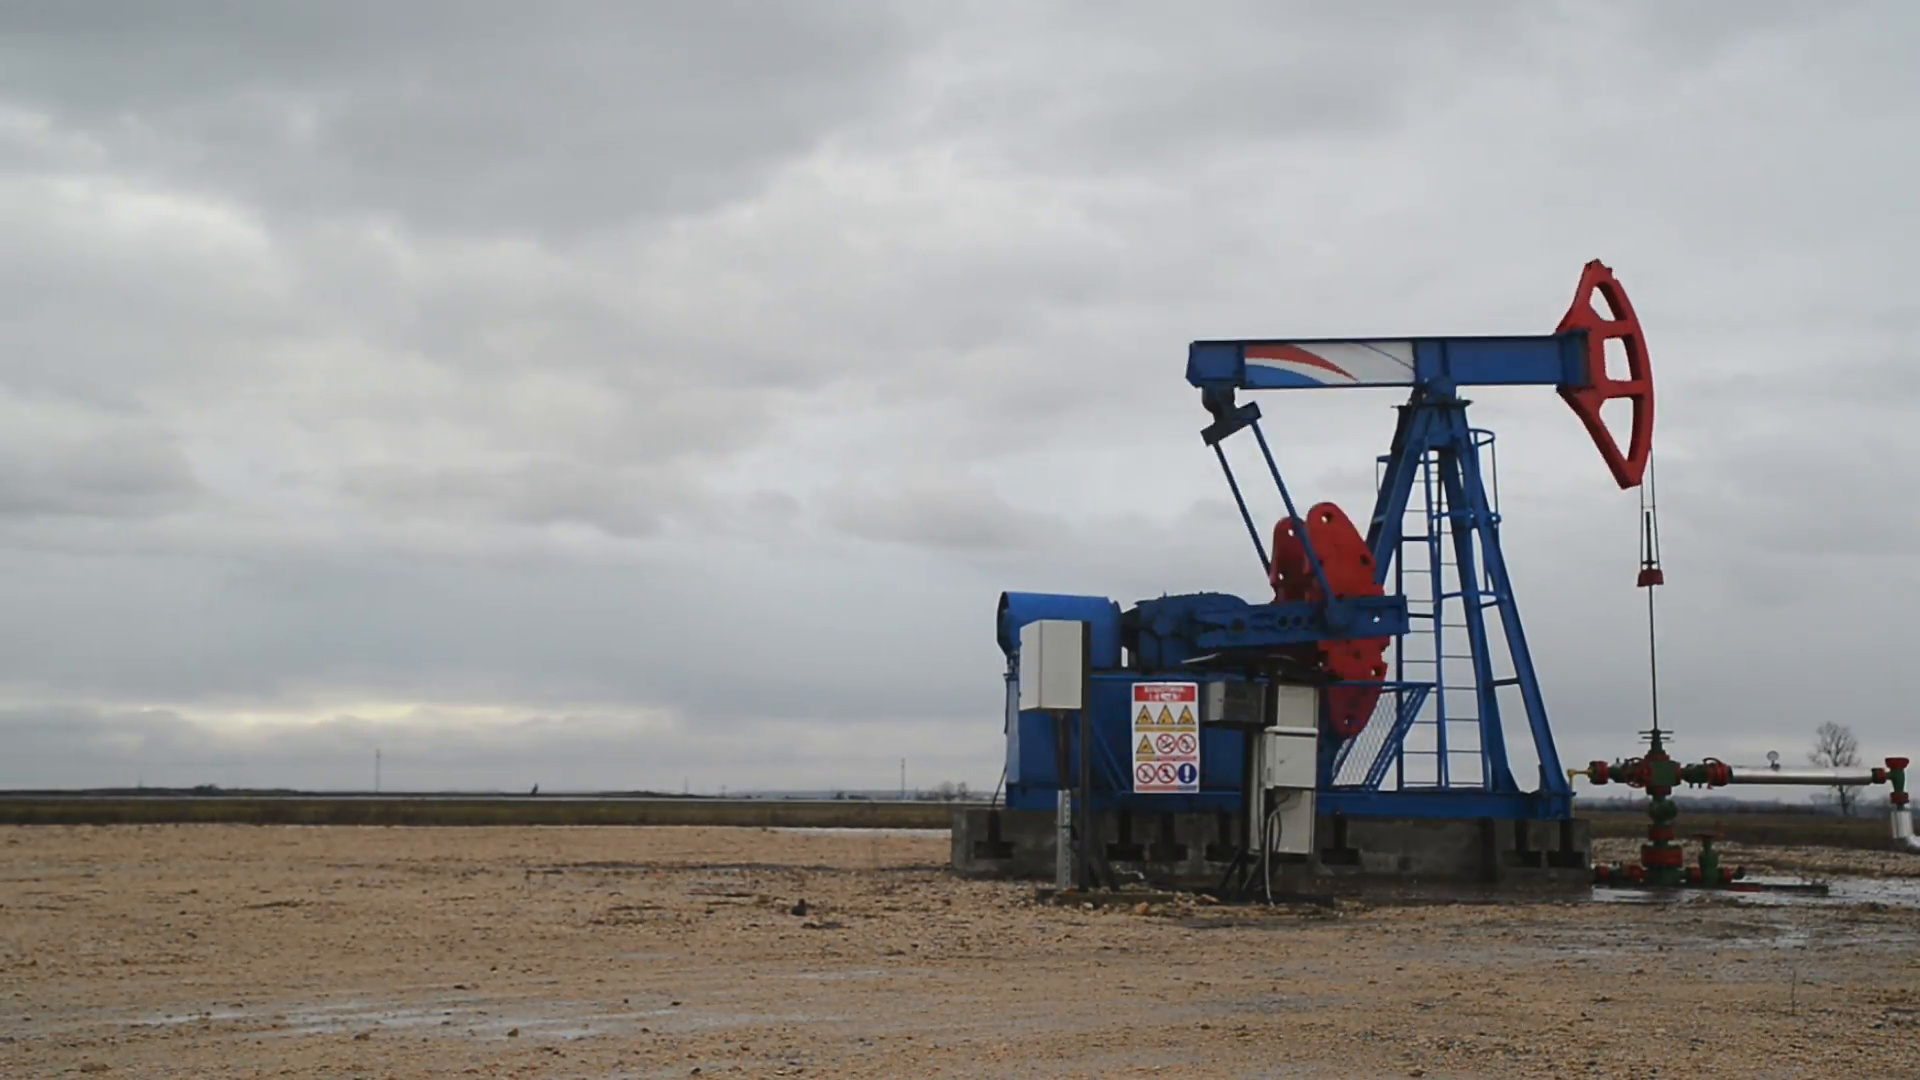 Pumpjack Oil Pump Operating On Natural Gas In The Field Pumping From The  Oil Well. 1920x1080 Timelapse Full Hd Footage. Stock Video Footage -  VideoBlocks - Natural Gas PNG HD